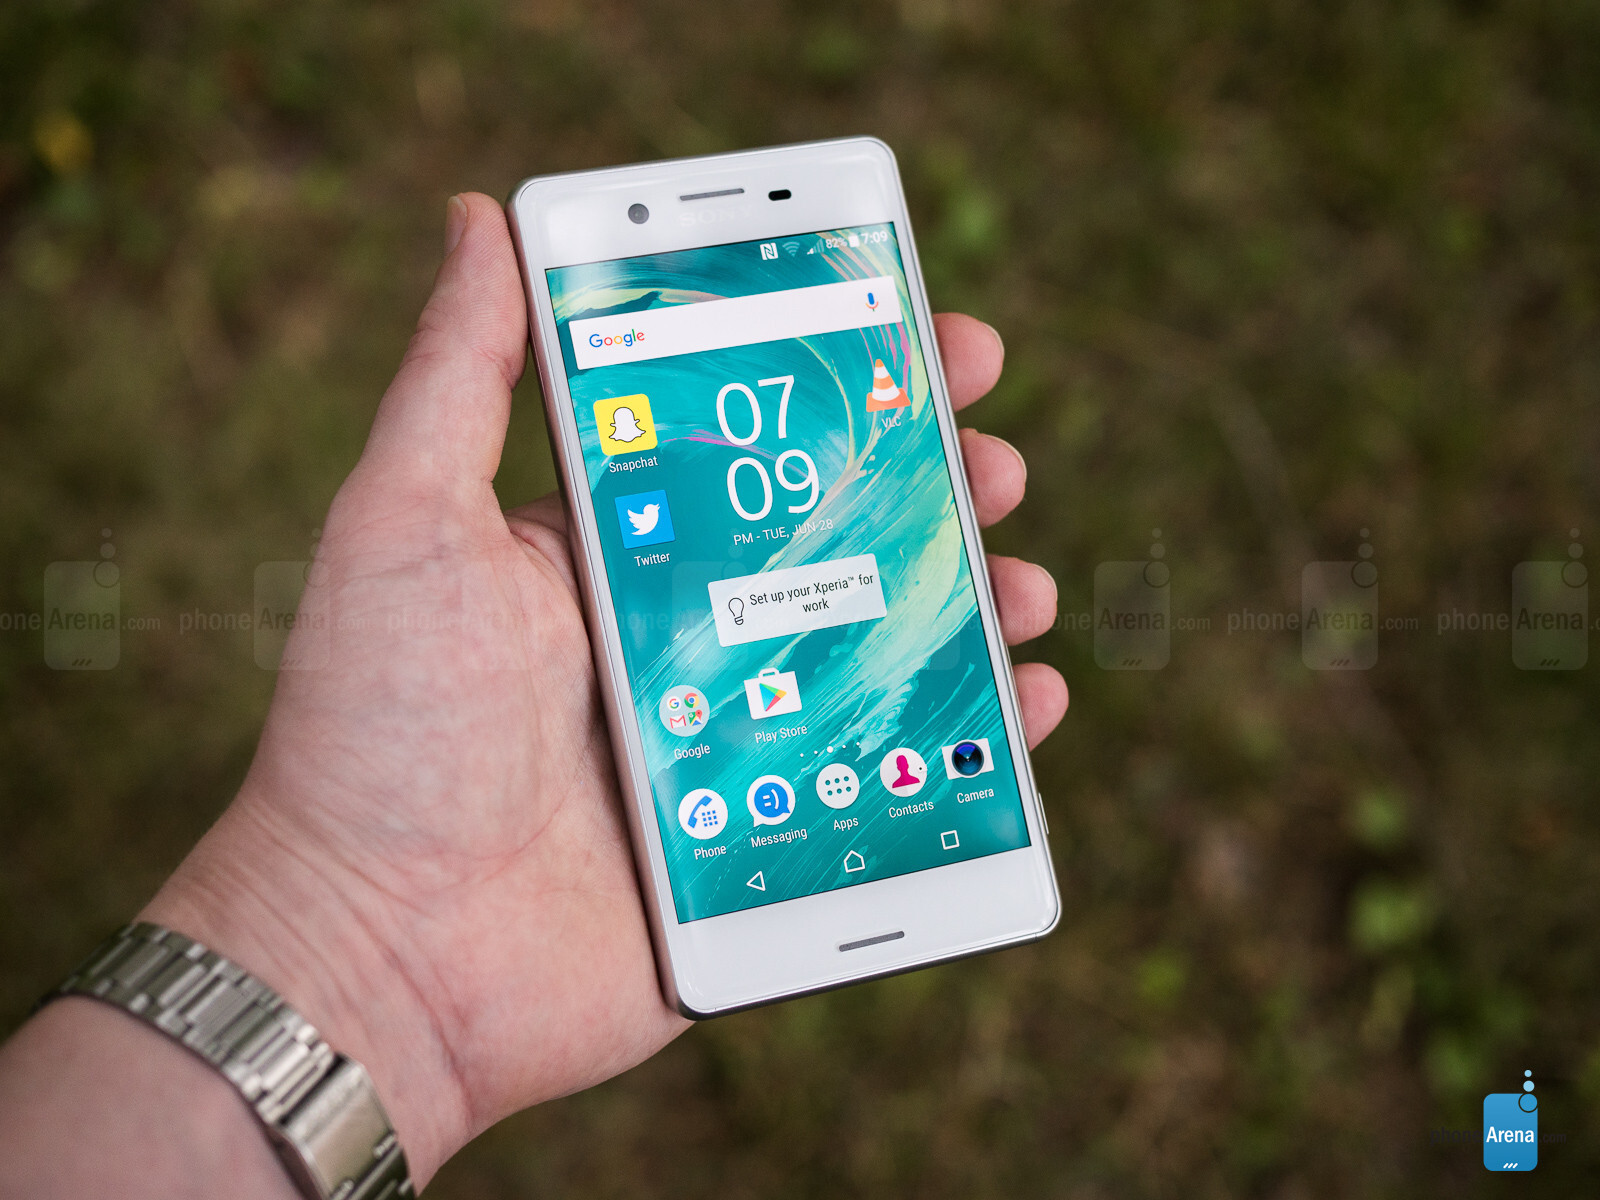 Sony Xperia: how to set up the Internet